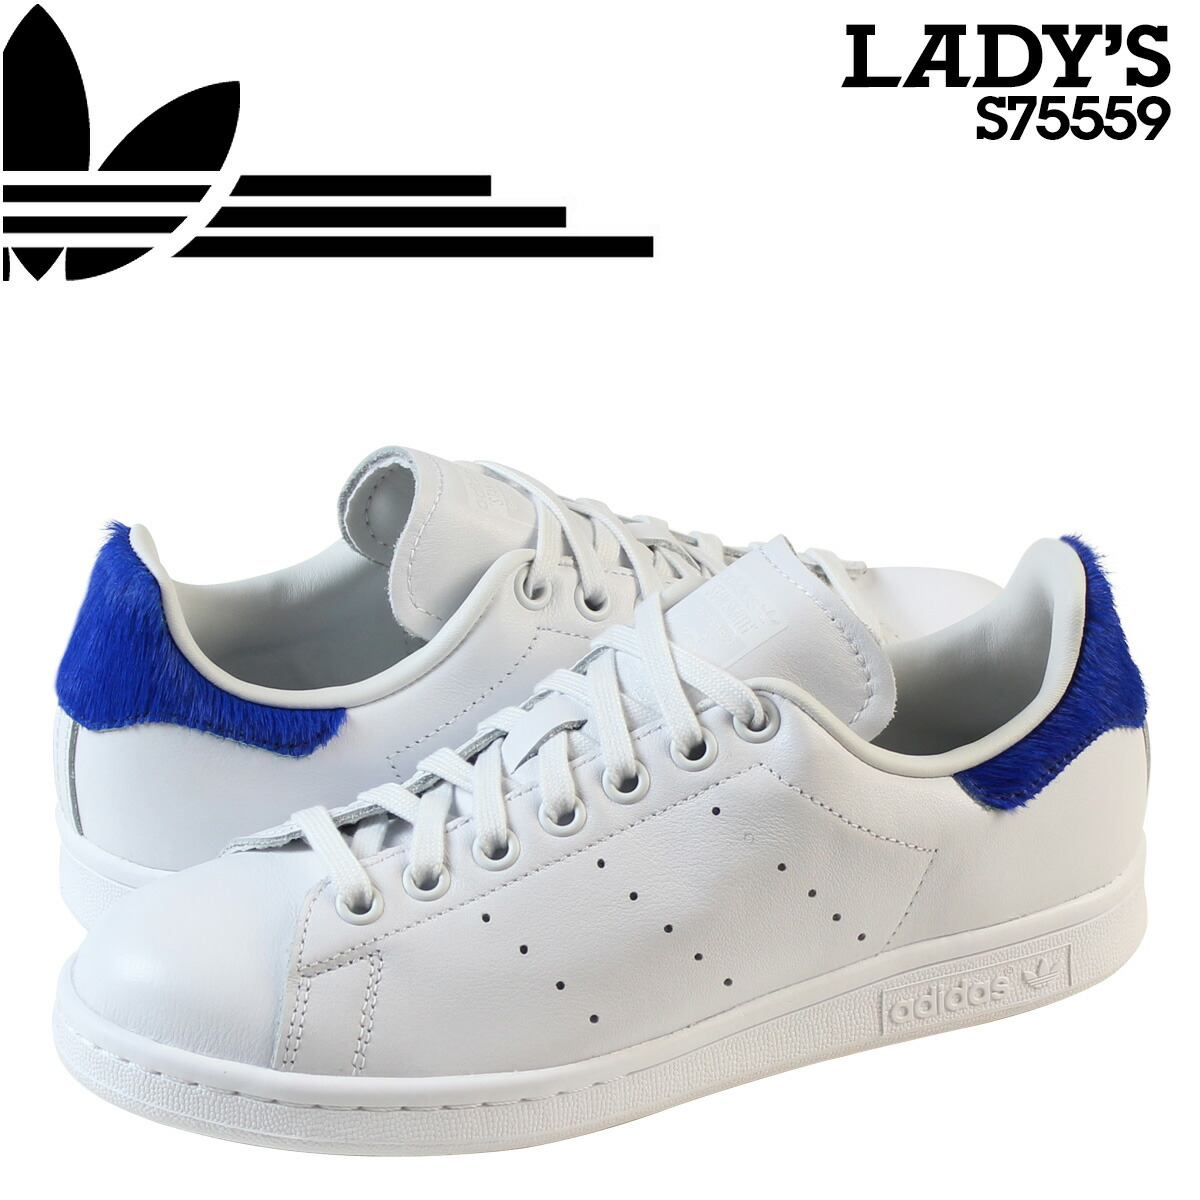 famous brand differently usa cheap sale Adidas originals Stan Smith Lady's adidas Originals sneakers STAN SMITH W  S75559 white